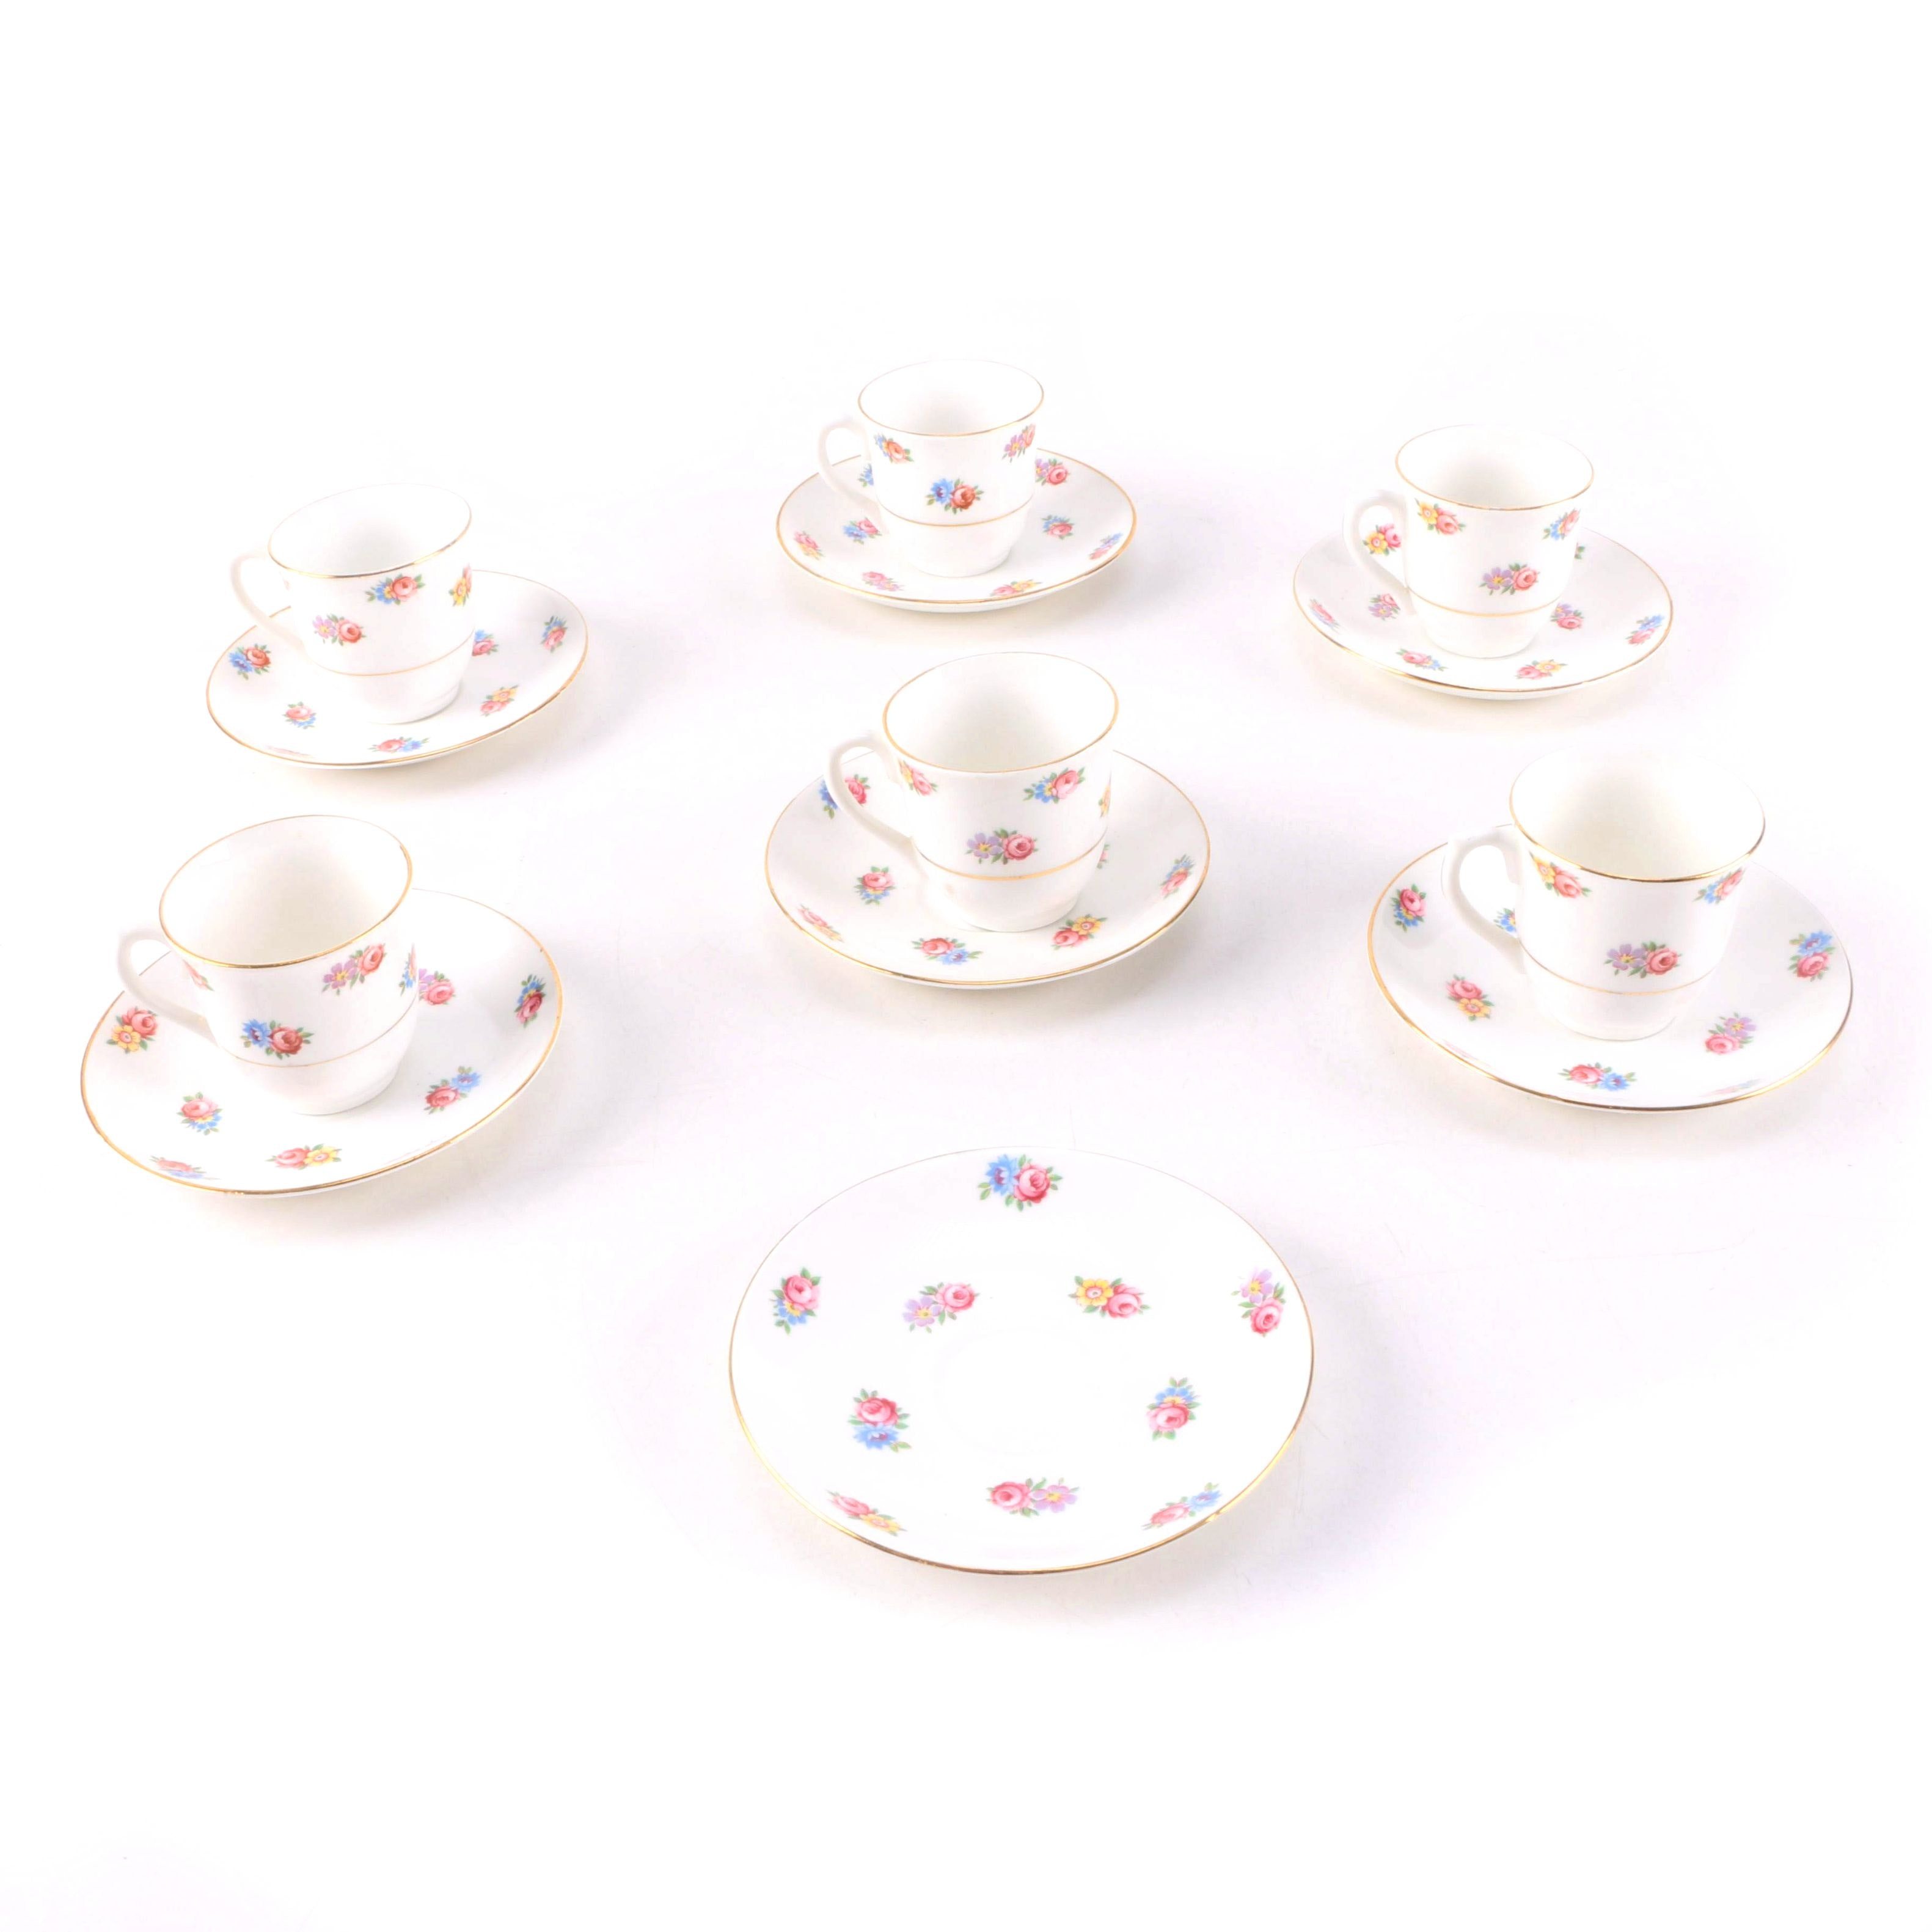 Floral Teacups and Saucers for Six